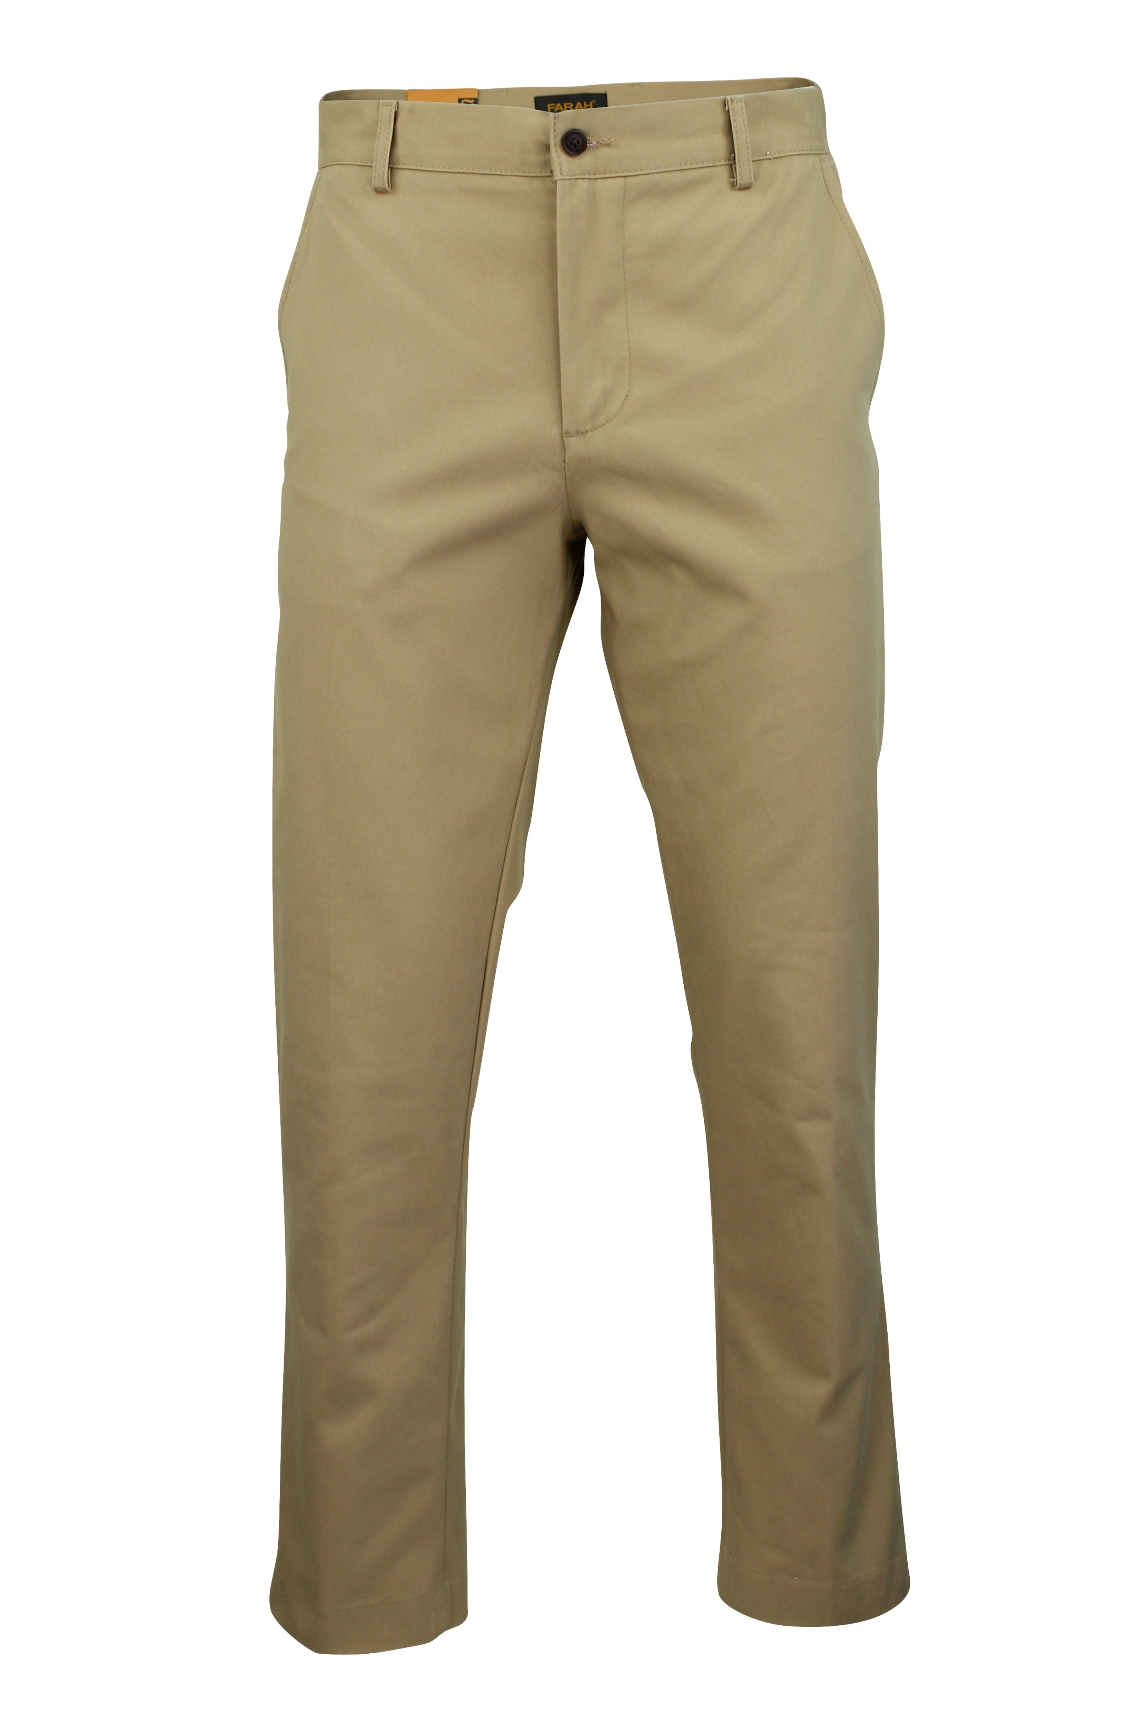 Mens Chino Trousers by Farah 'Norcross Twill' Regular Fit ...